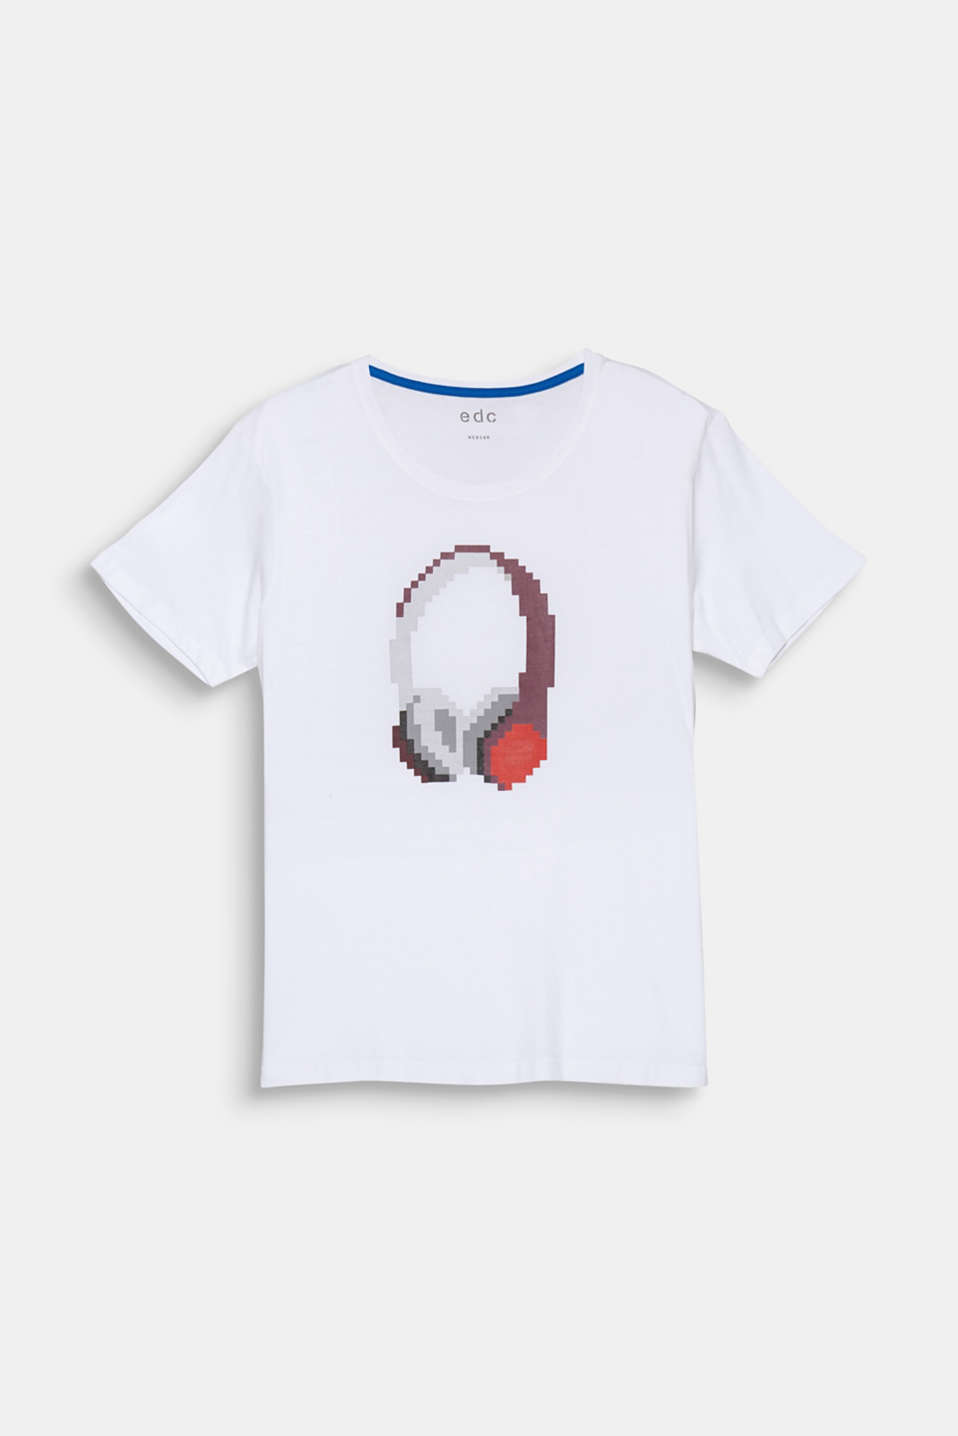 The large pixelated headphone print makes this jersey T-shirt really eye-catching.